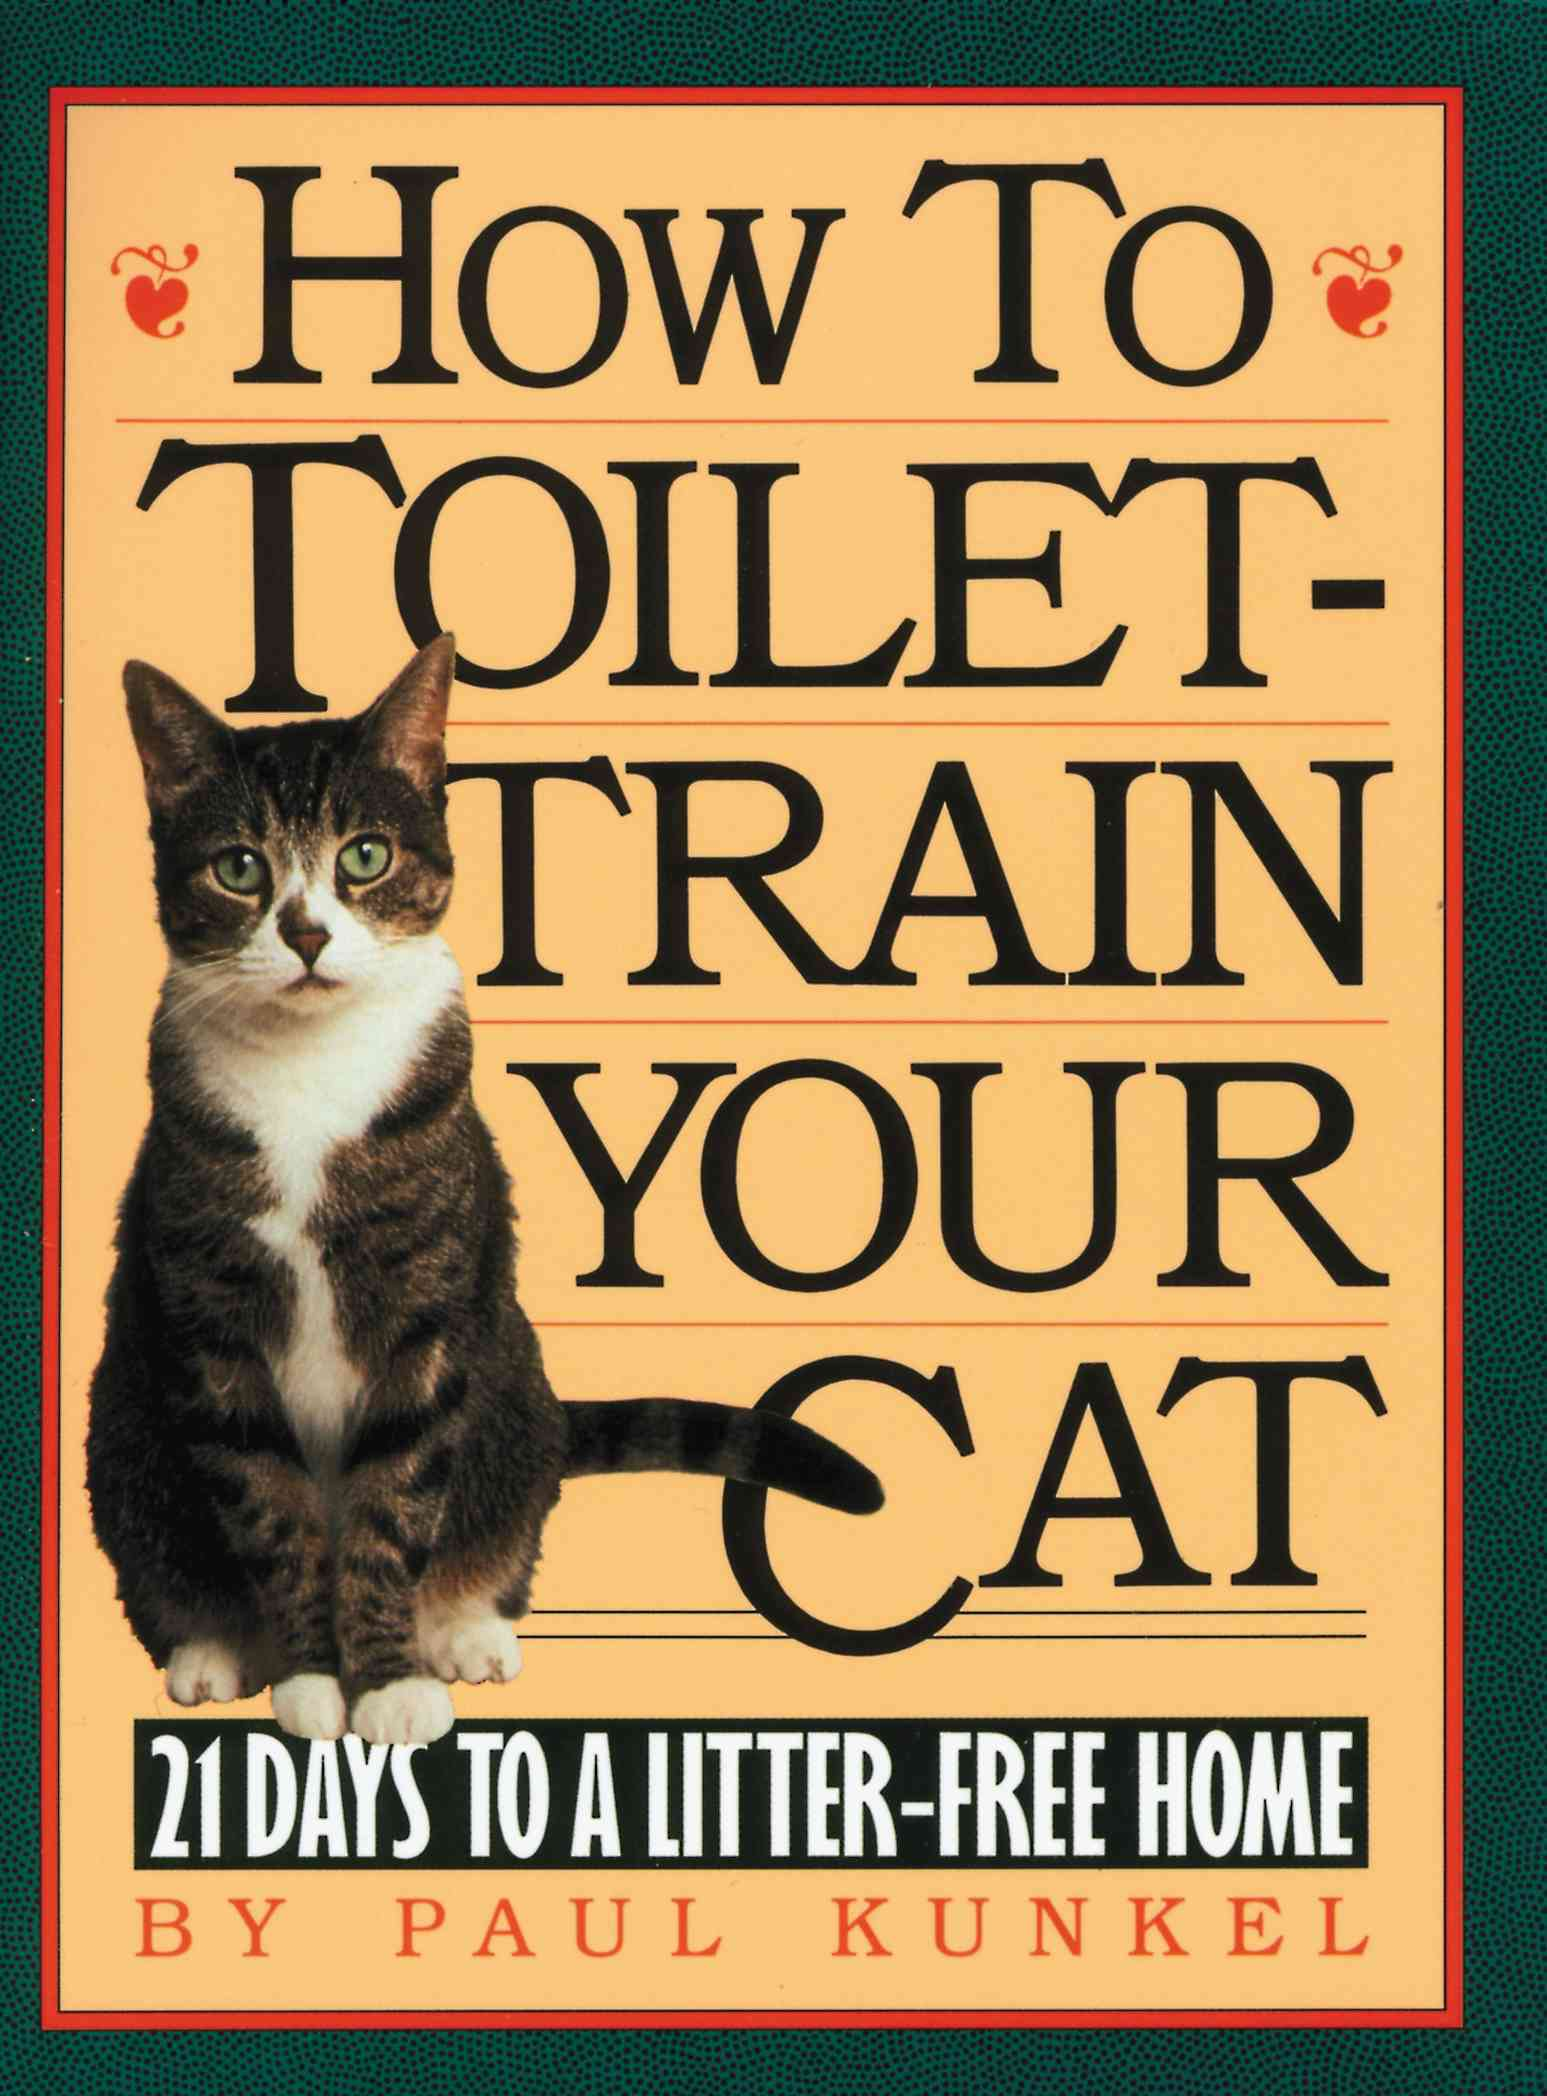 How to Toilet Train Your Cat: 21 Days to a Litter-Free Home (Paperback)